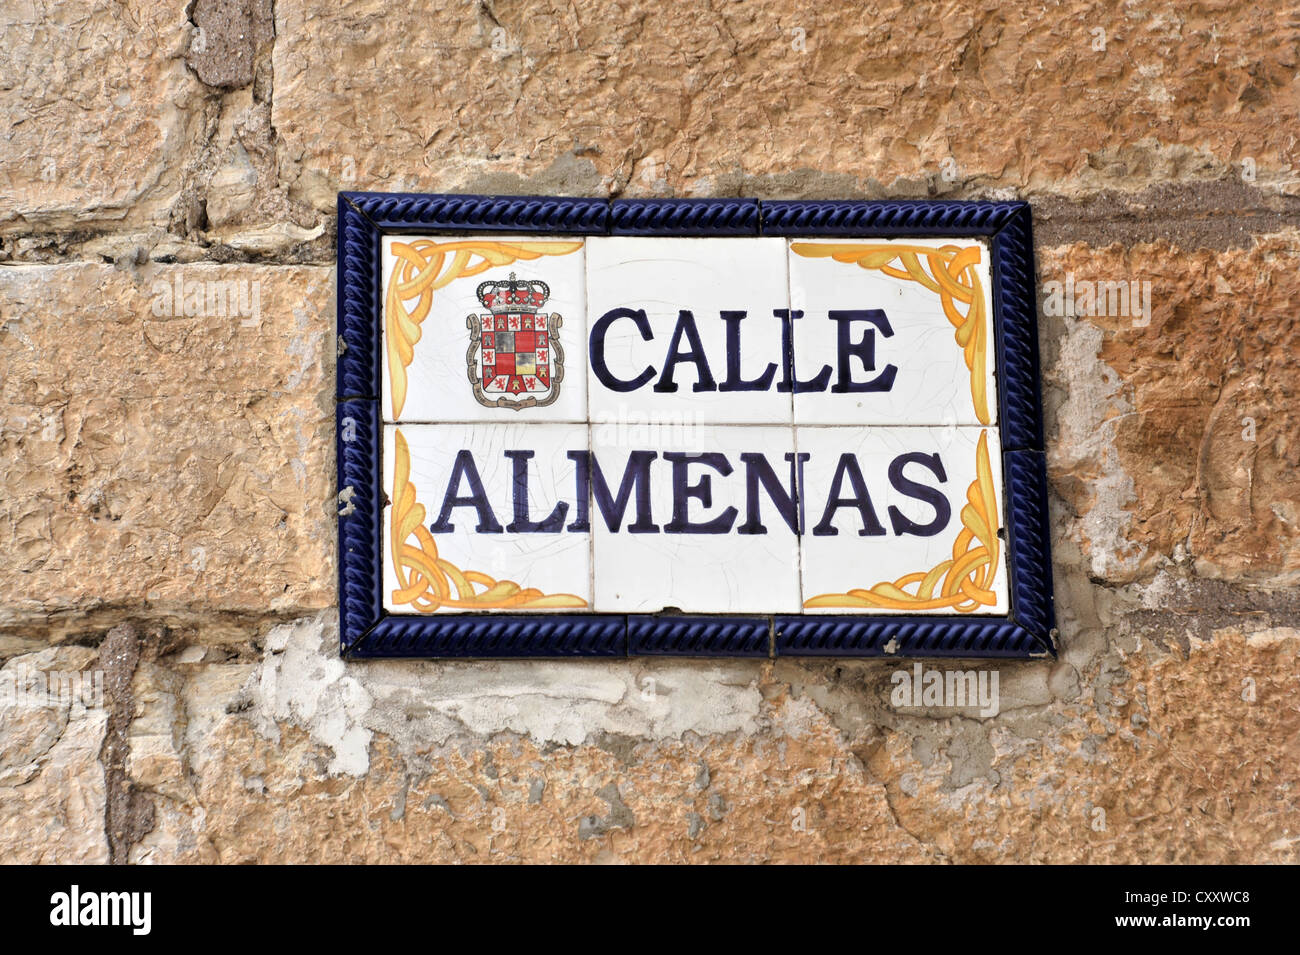 Calle Almenas, street sign, centre of Jaén, Andalusia, Spain, Europe - Stock Image